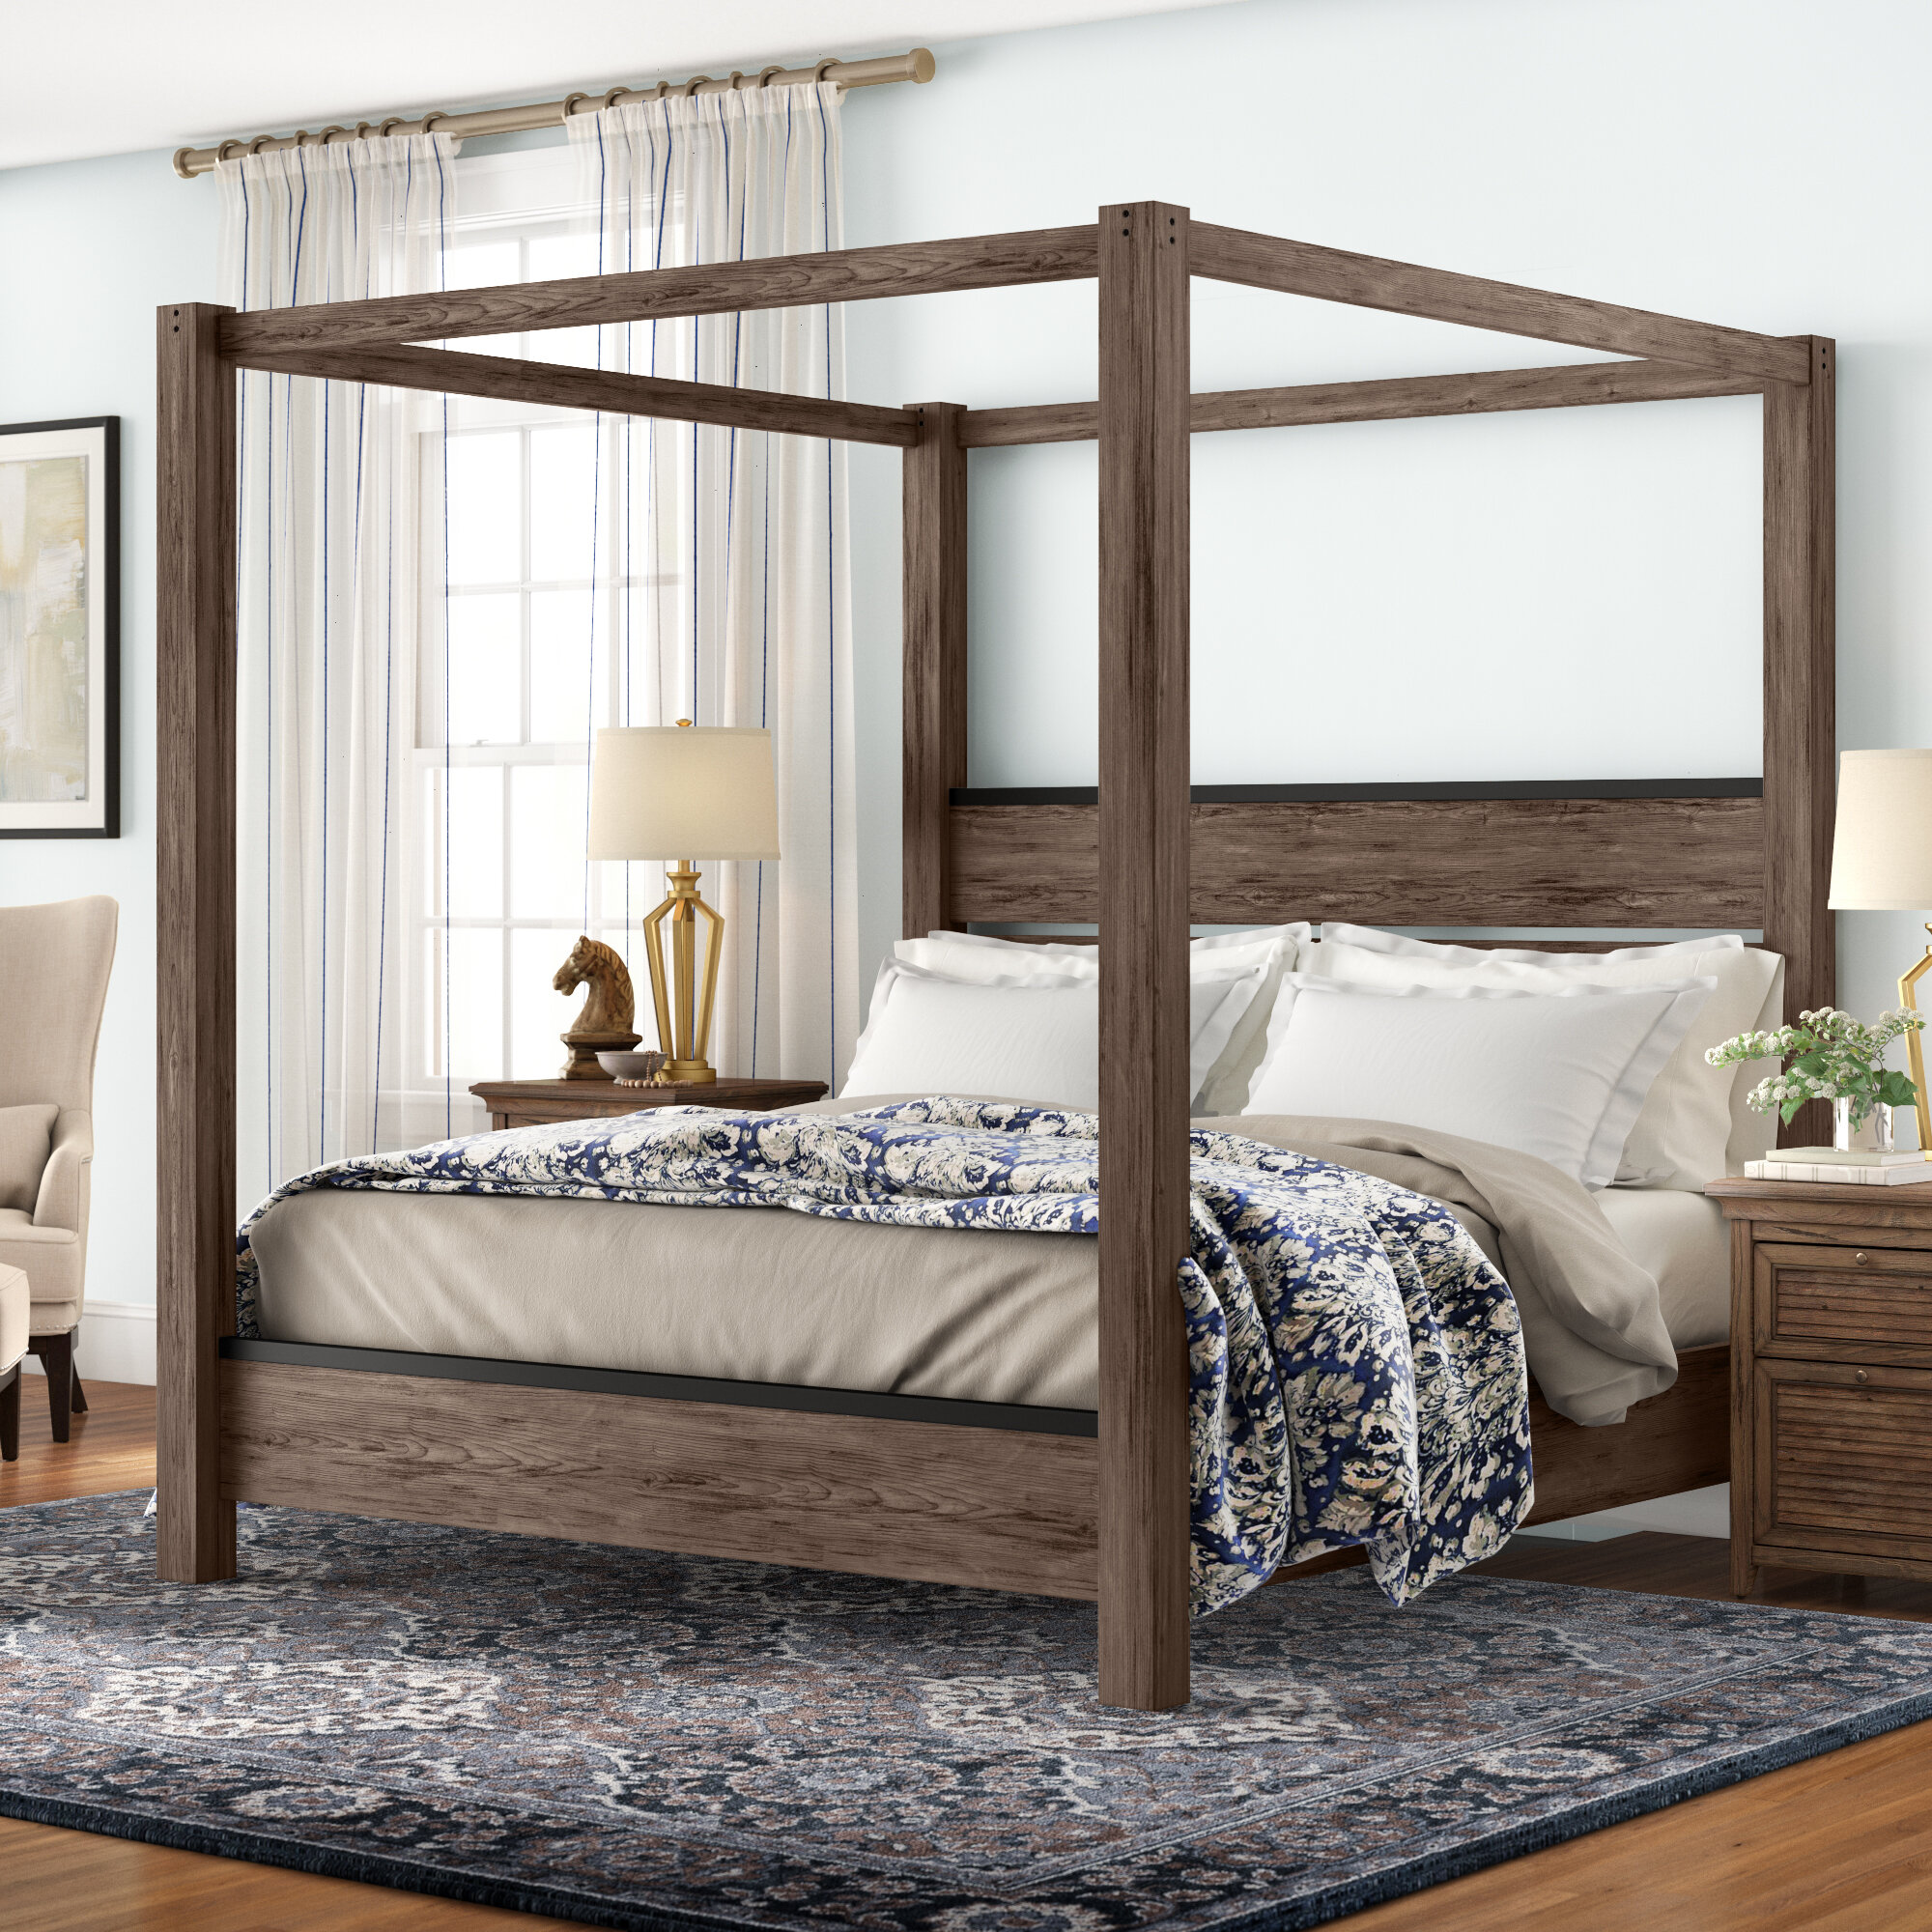 Picture of: King Size Canopy Beds You Ll Love In 2020 Wayfair